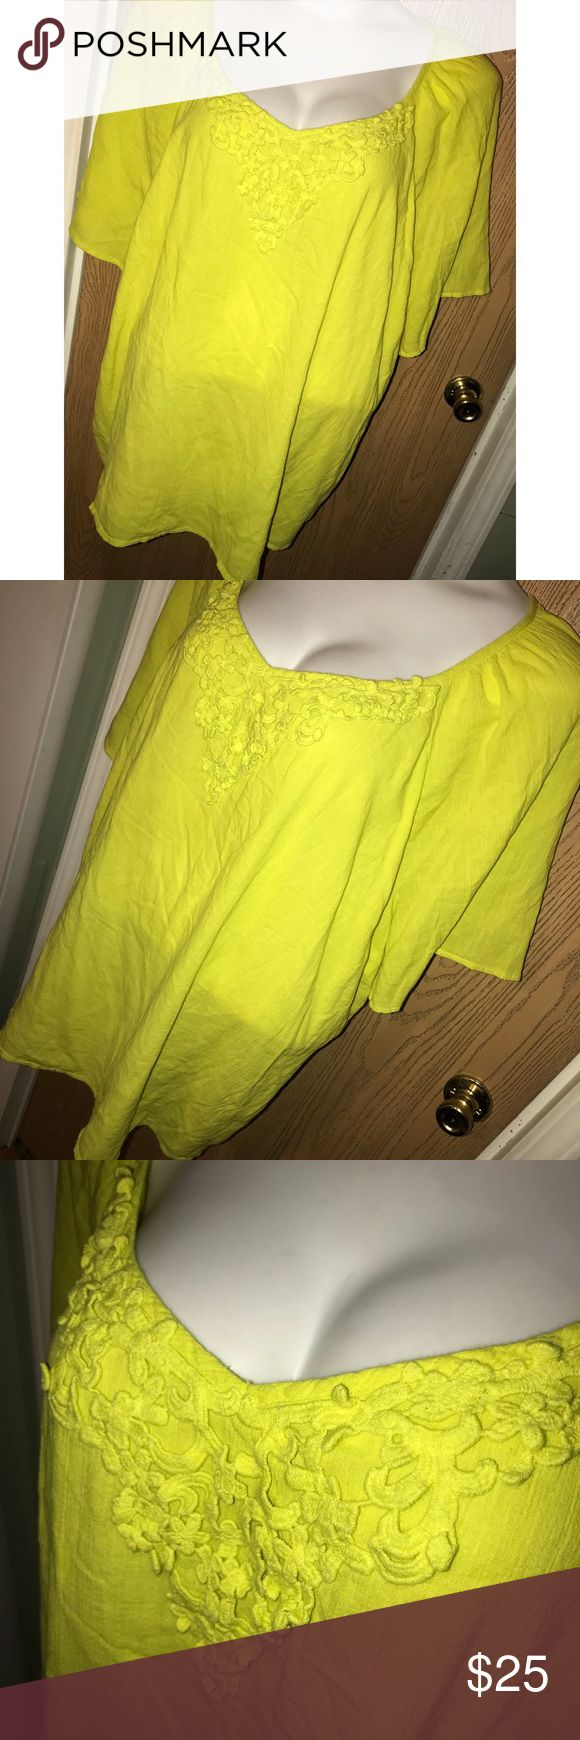 "Neon crochet front 34/36 top Super pretty neon yellow top with crochet detail on the front. Great used condition. 37"" from armpit to armpit, 31"" total length. Catherines Tops"